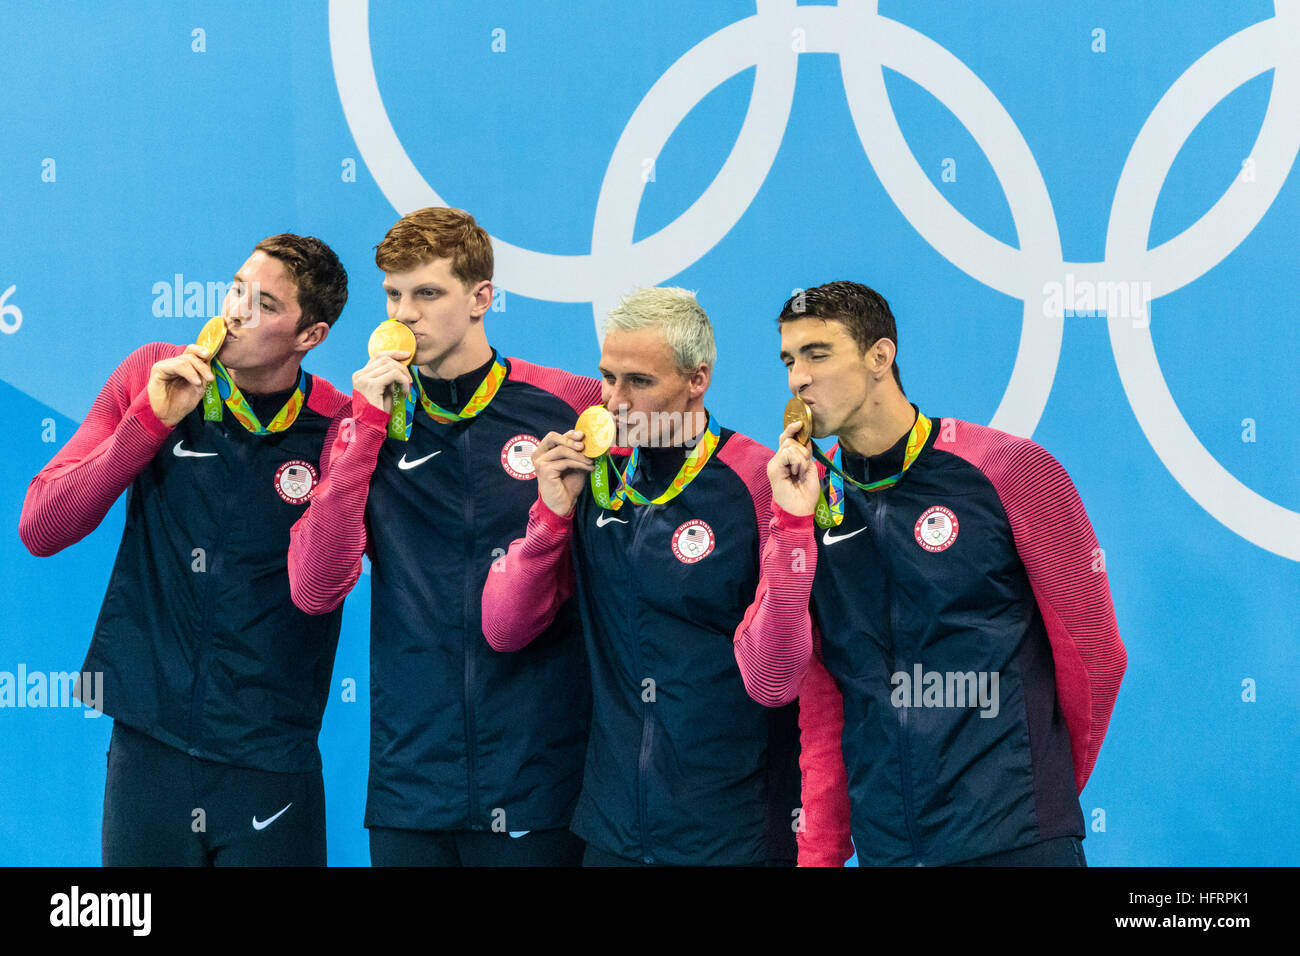 Rio de Janeiro, Brazil. 9 August 2016.   Team USA gold medal winners in the Men's 4x200m freestyle relay at - Stock Image